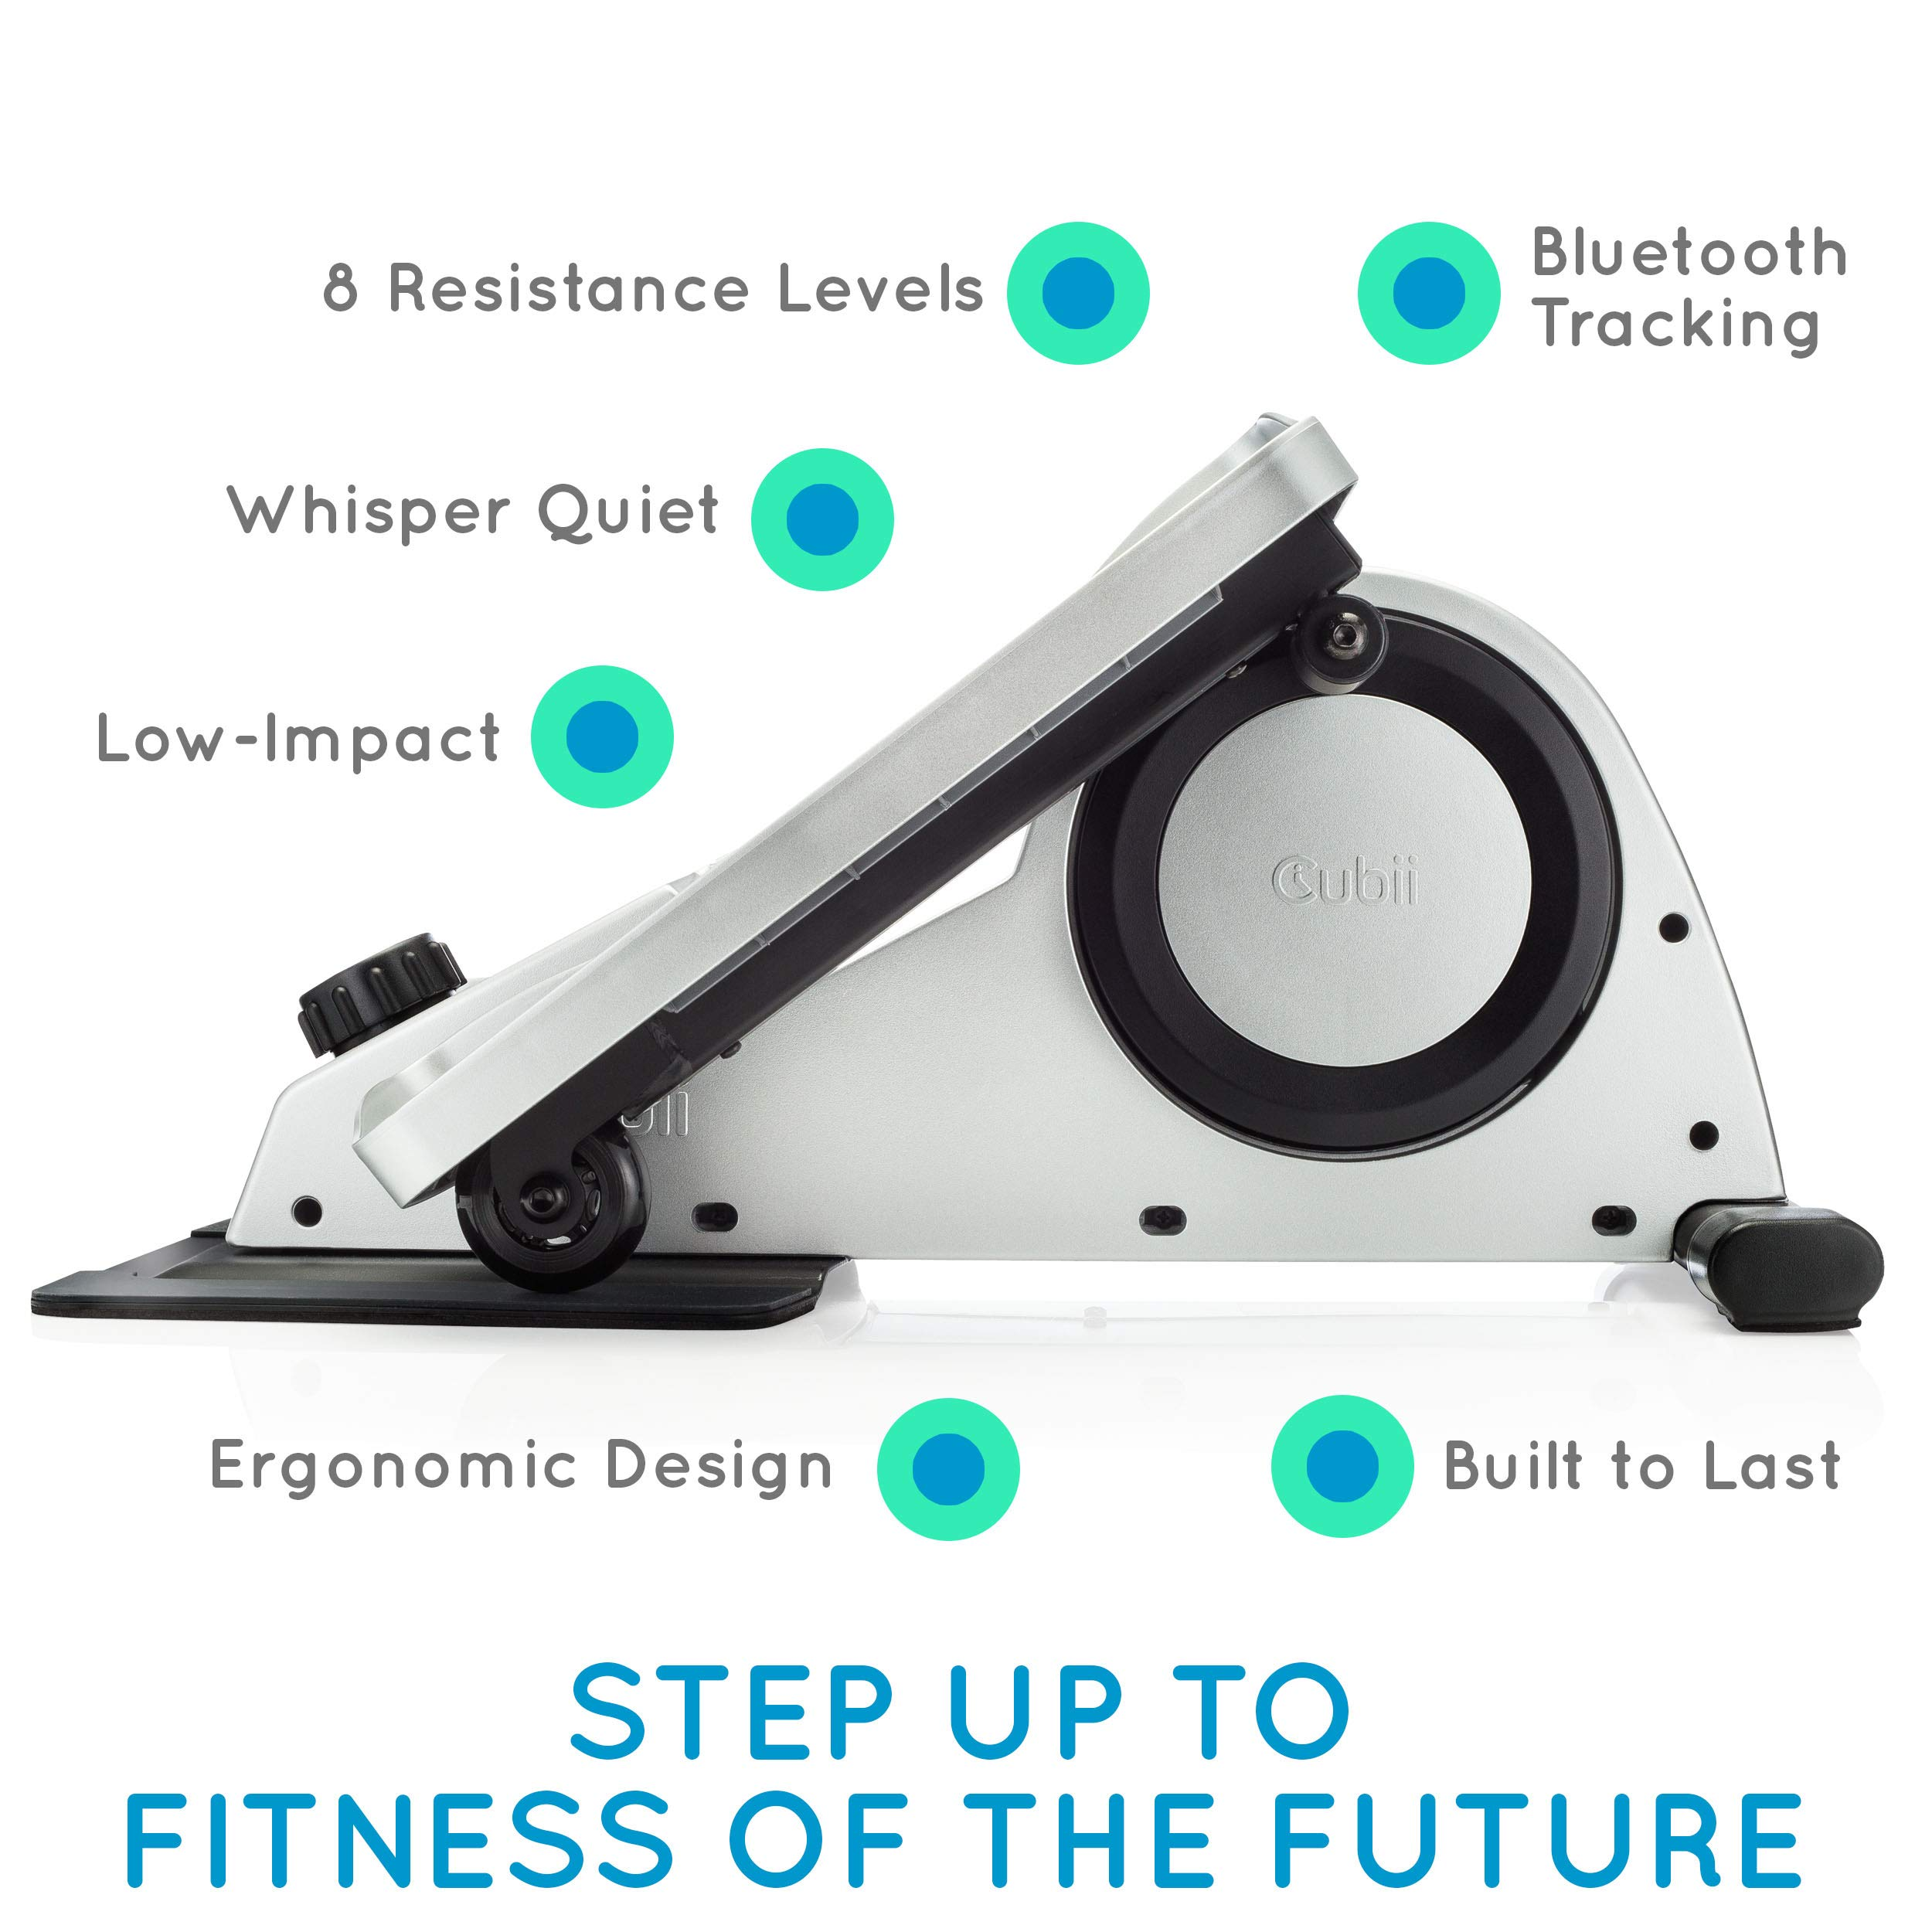 Cubii Under Desk Elliptical, Bluetooth Enabled, Sync w/ FitBit and HealthKit, Adjustable Resistance, Easy Assembly by Cubii (Image #2)